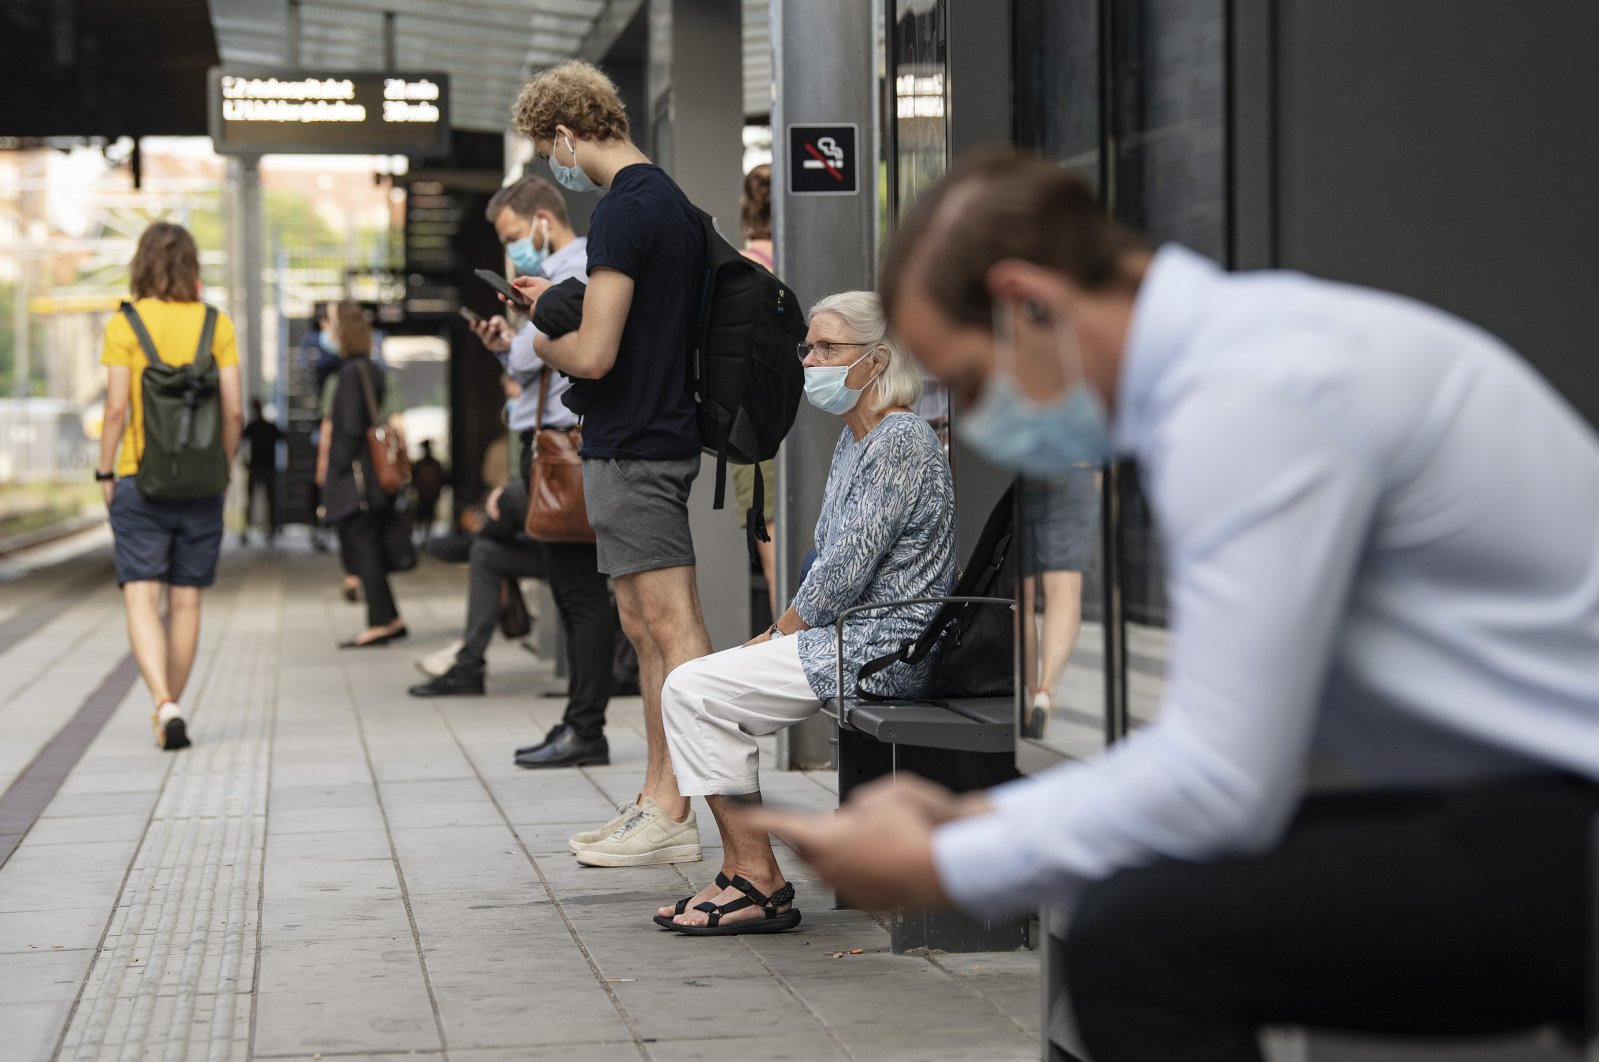 Passengers wear masks as they wait for a tram in Aarhus, Denmark, 10 August 2020. (EPAEFE Photo)